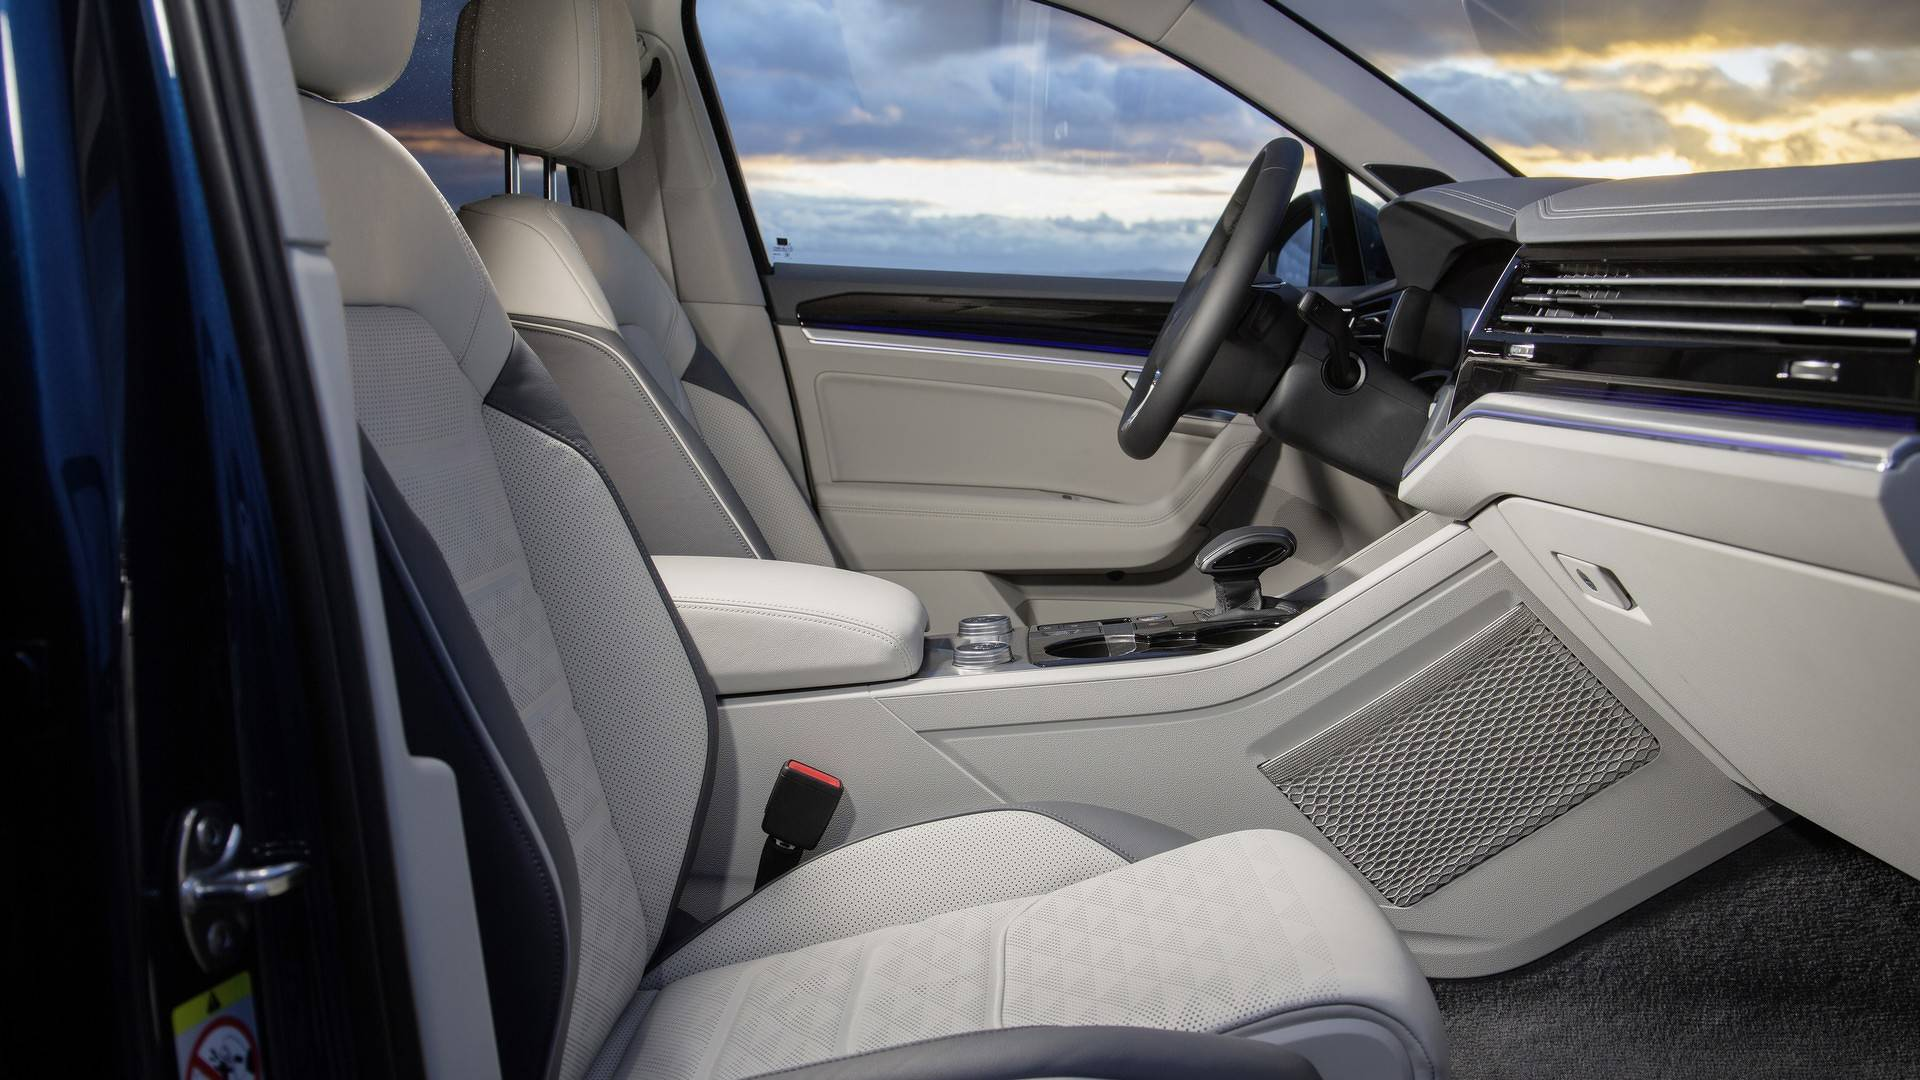 2019 VW Touareg: First Official Interior Images Are Out